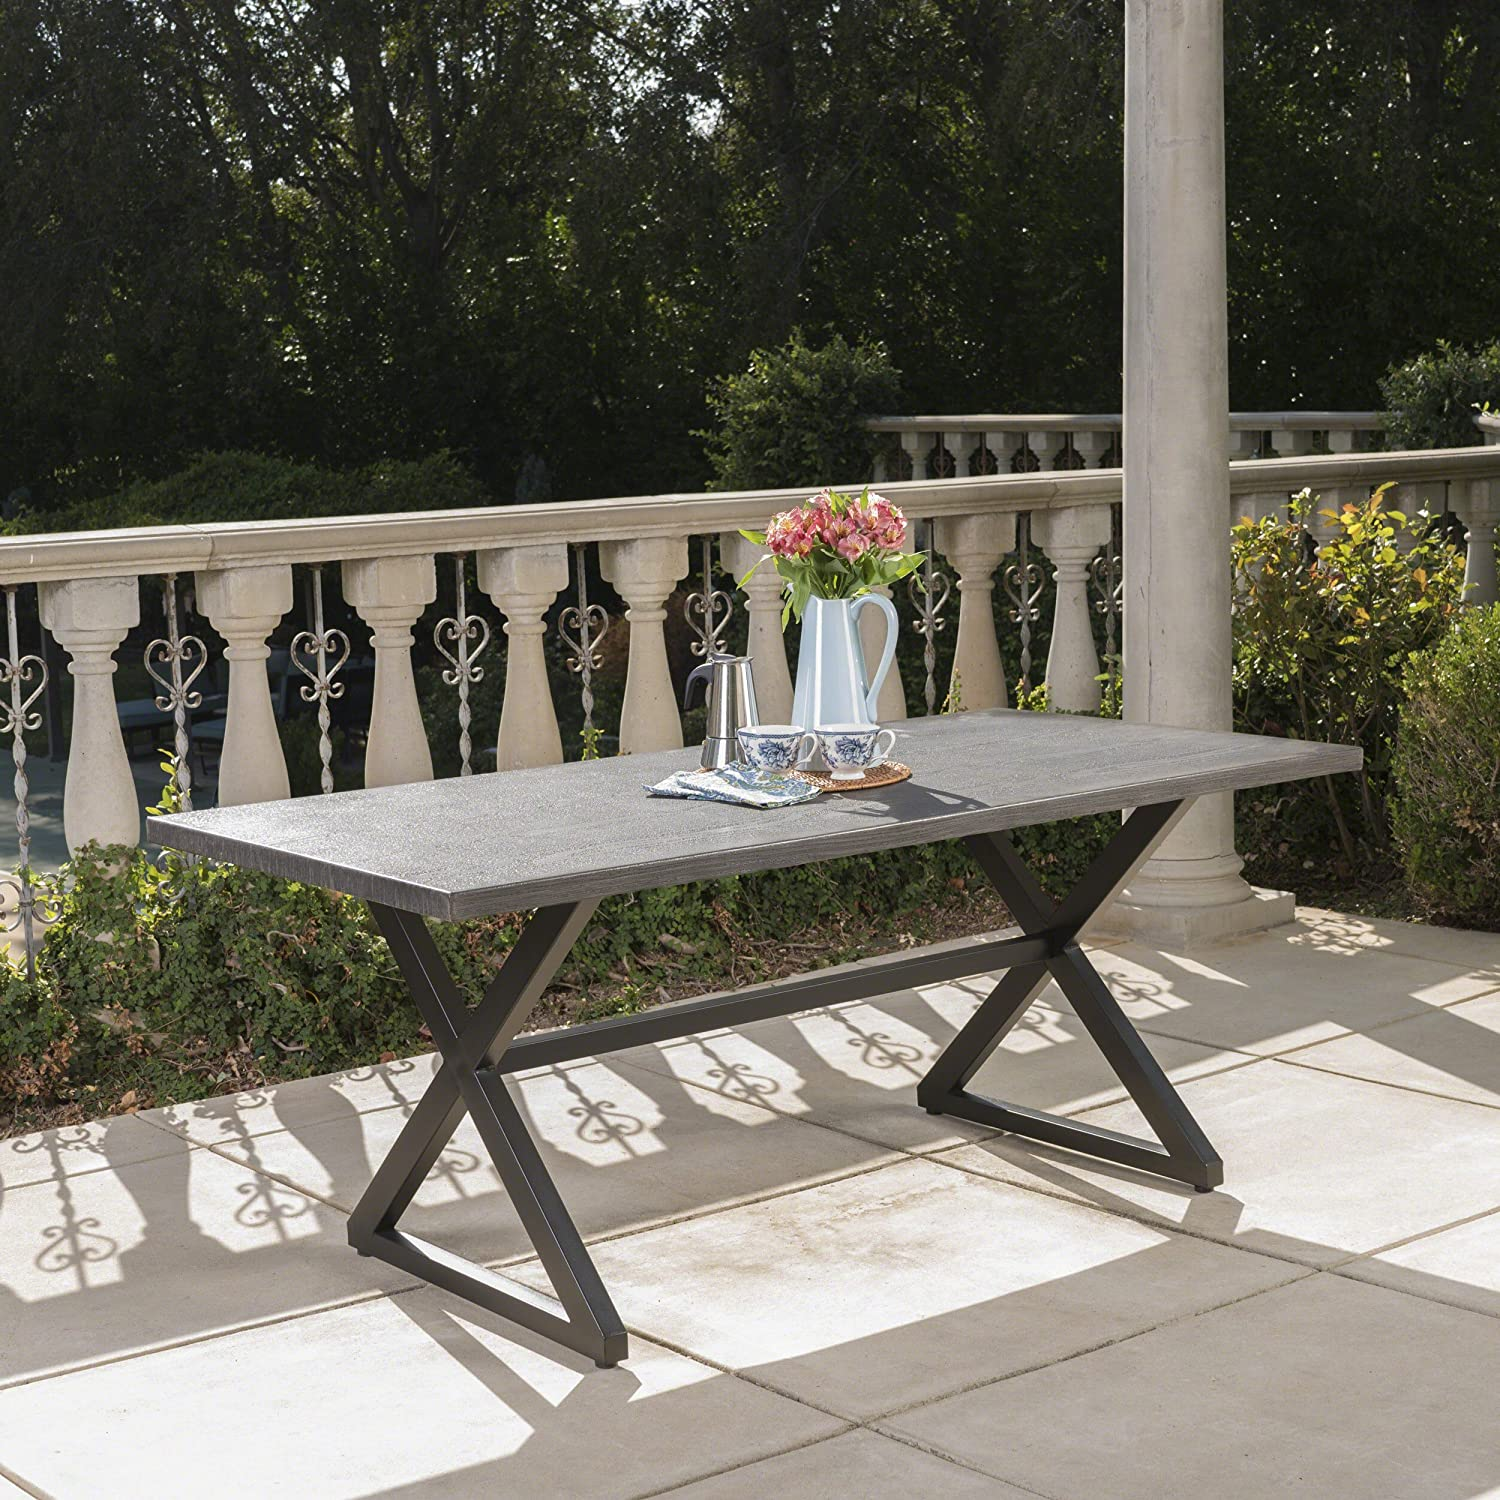 Christopher Knight Home 302486 Rolando Outdoor Grey Aluminum Dining Table with Black Steel Frame